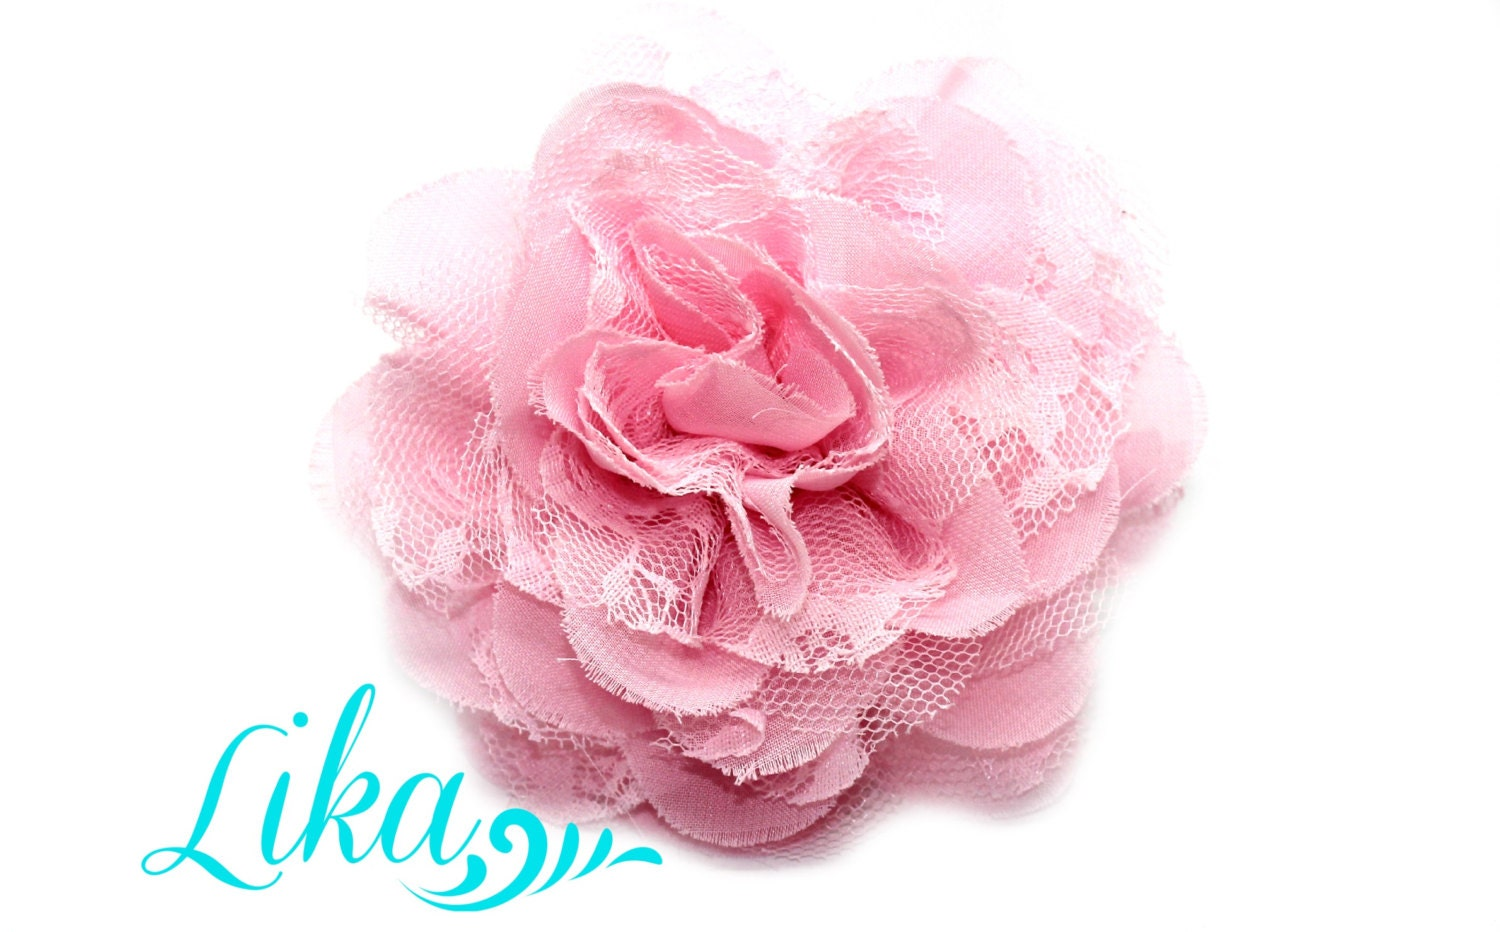 Pink Lace Flower Chiffon Flower Lace Rose Shredded Lace Etsy